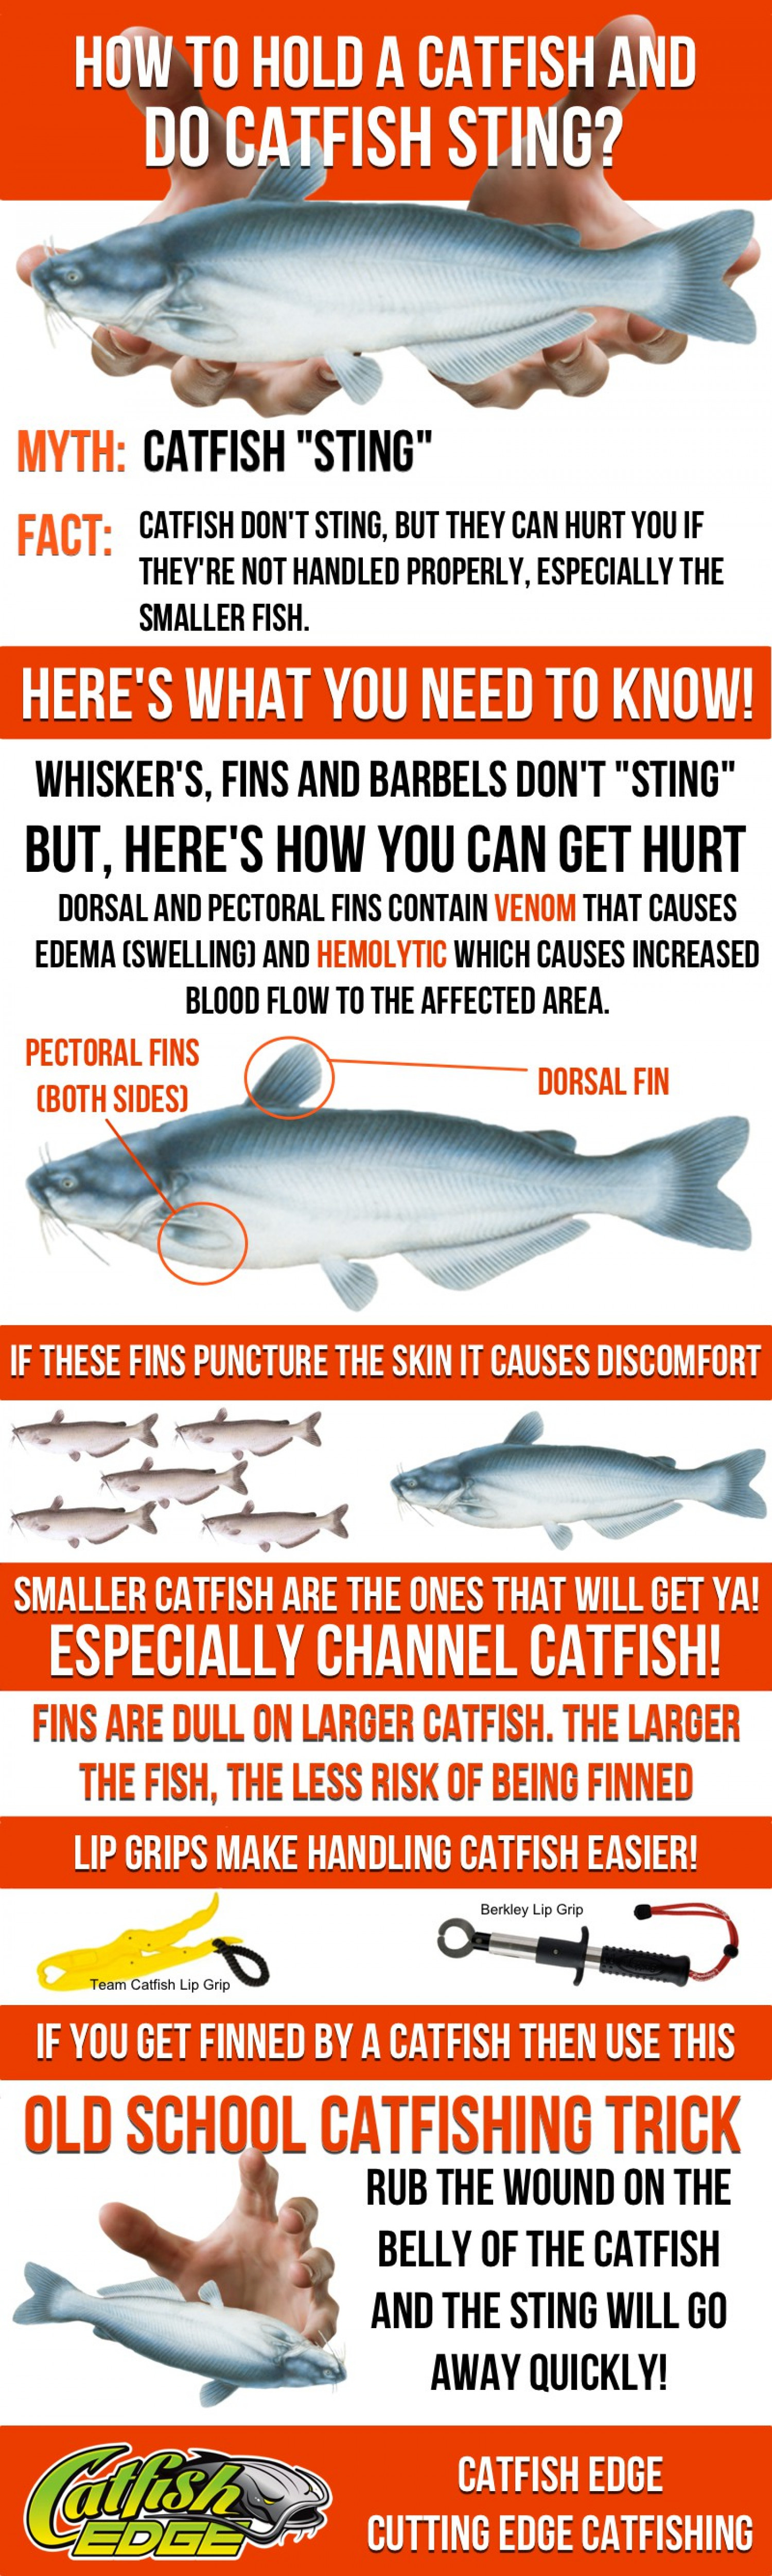 How To Hold a Catfish (and Do Catfish Sting) Infographic